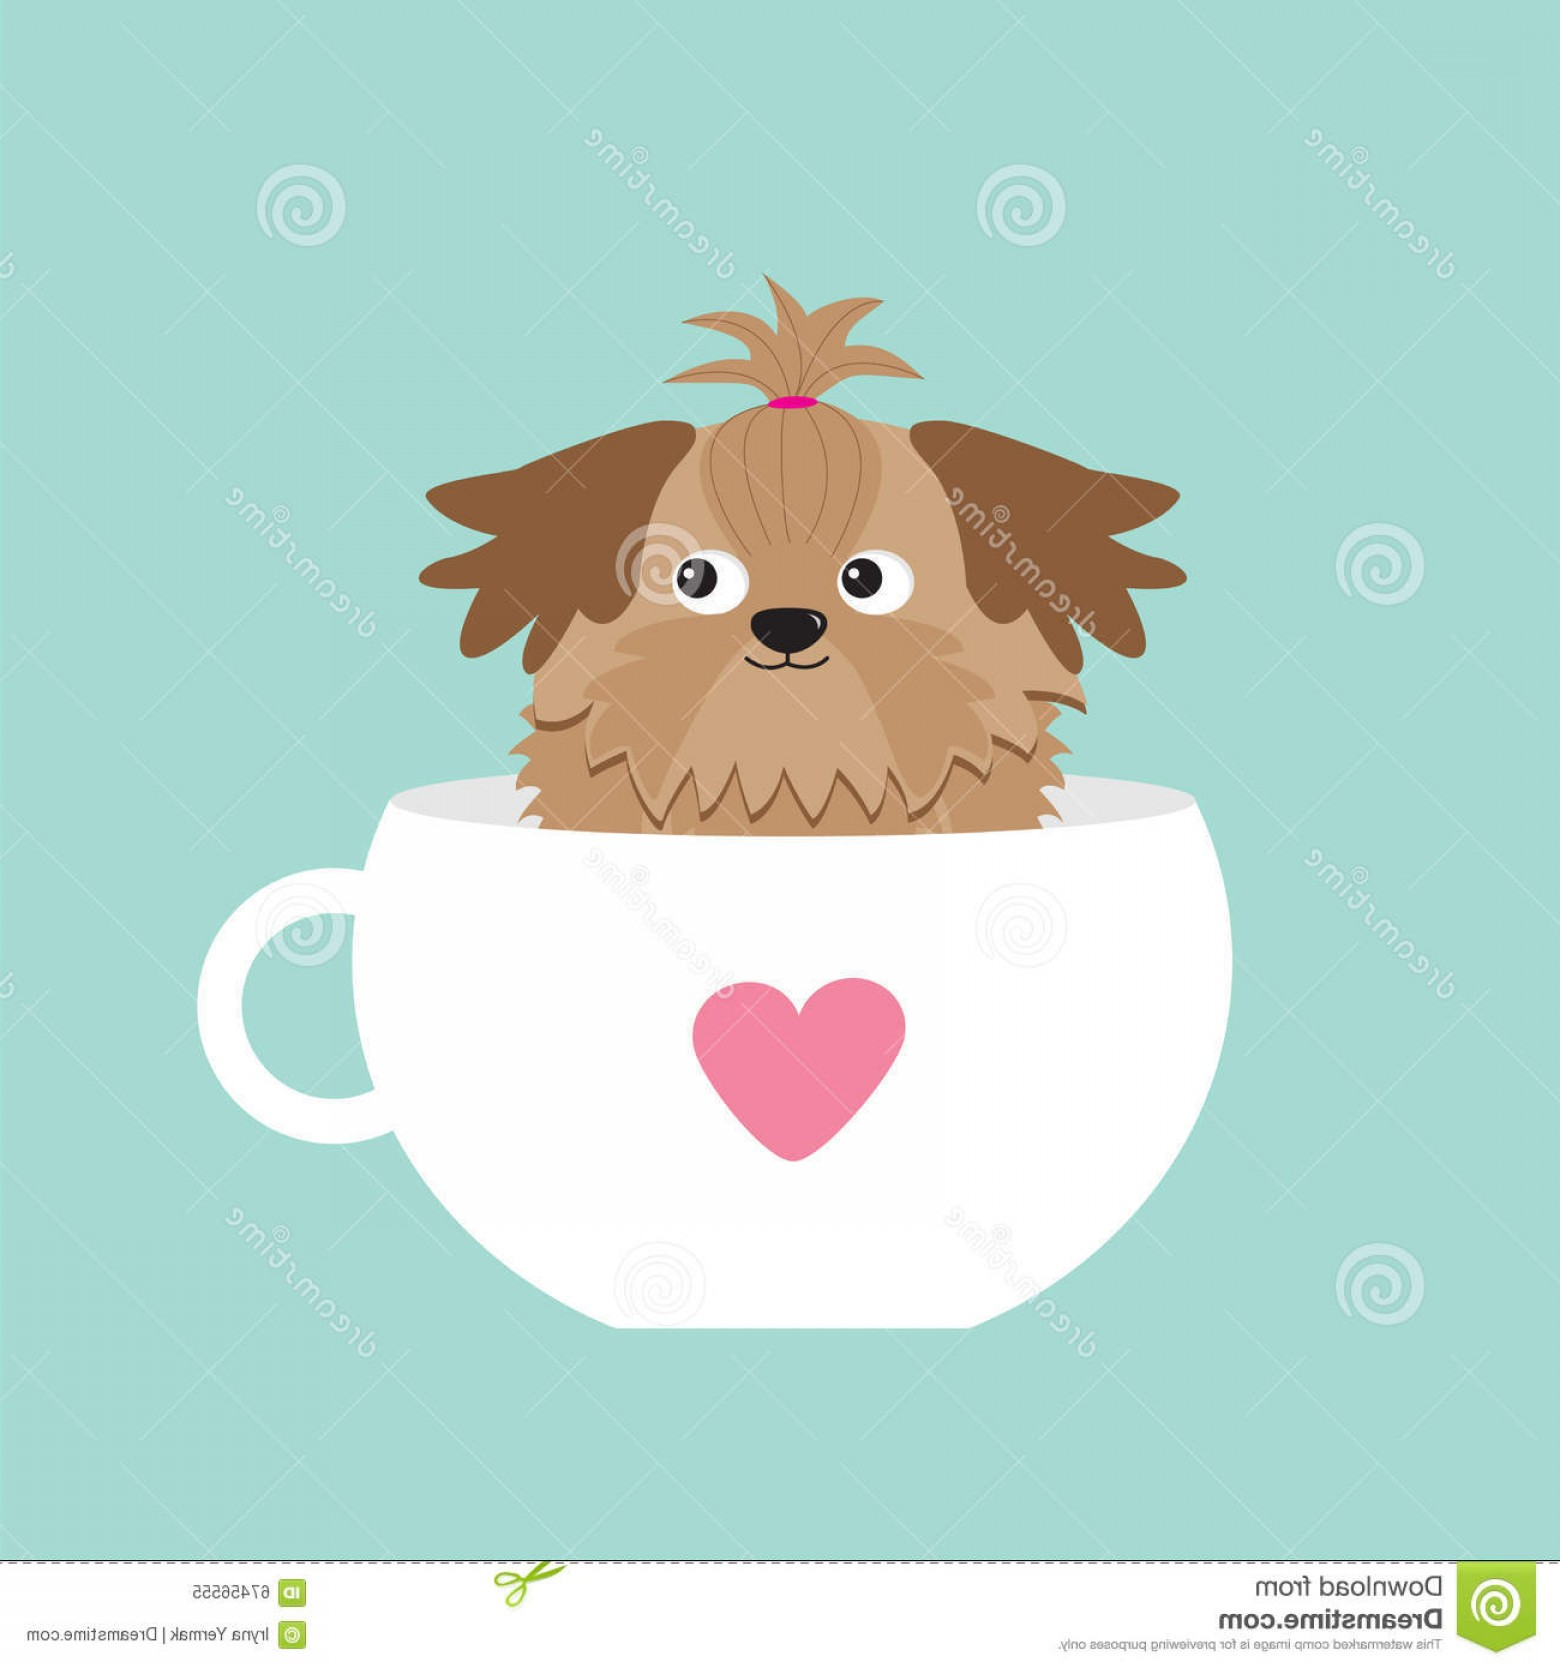 Shih Tzu Vector Siluete: Stock Illustration Shih Tzu Dog Sitting Pink Cup Heart Cute Cartoon Character Flat Design Blue Background Vector Illustration Image